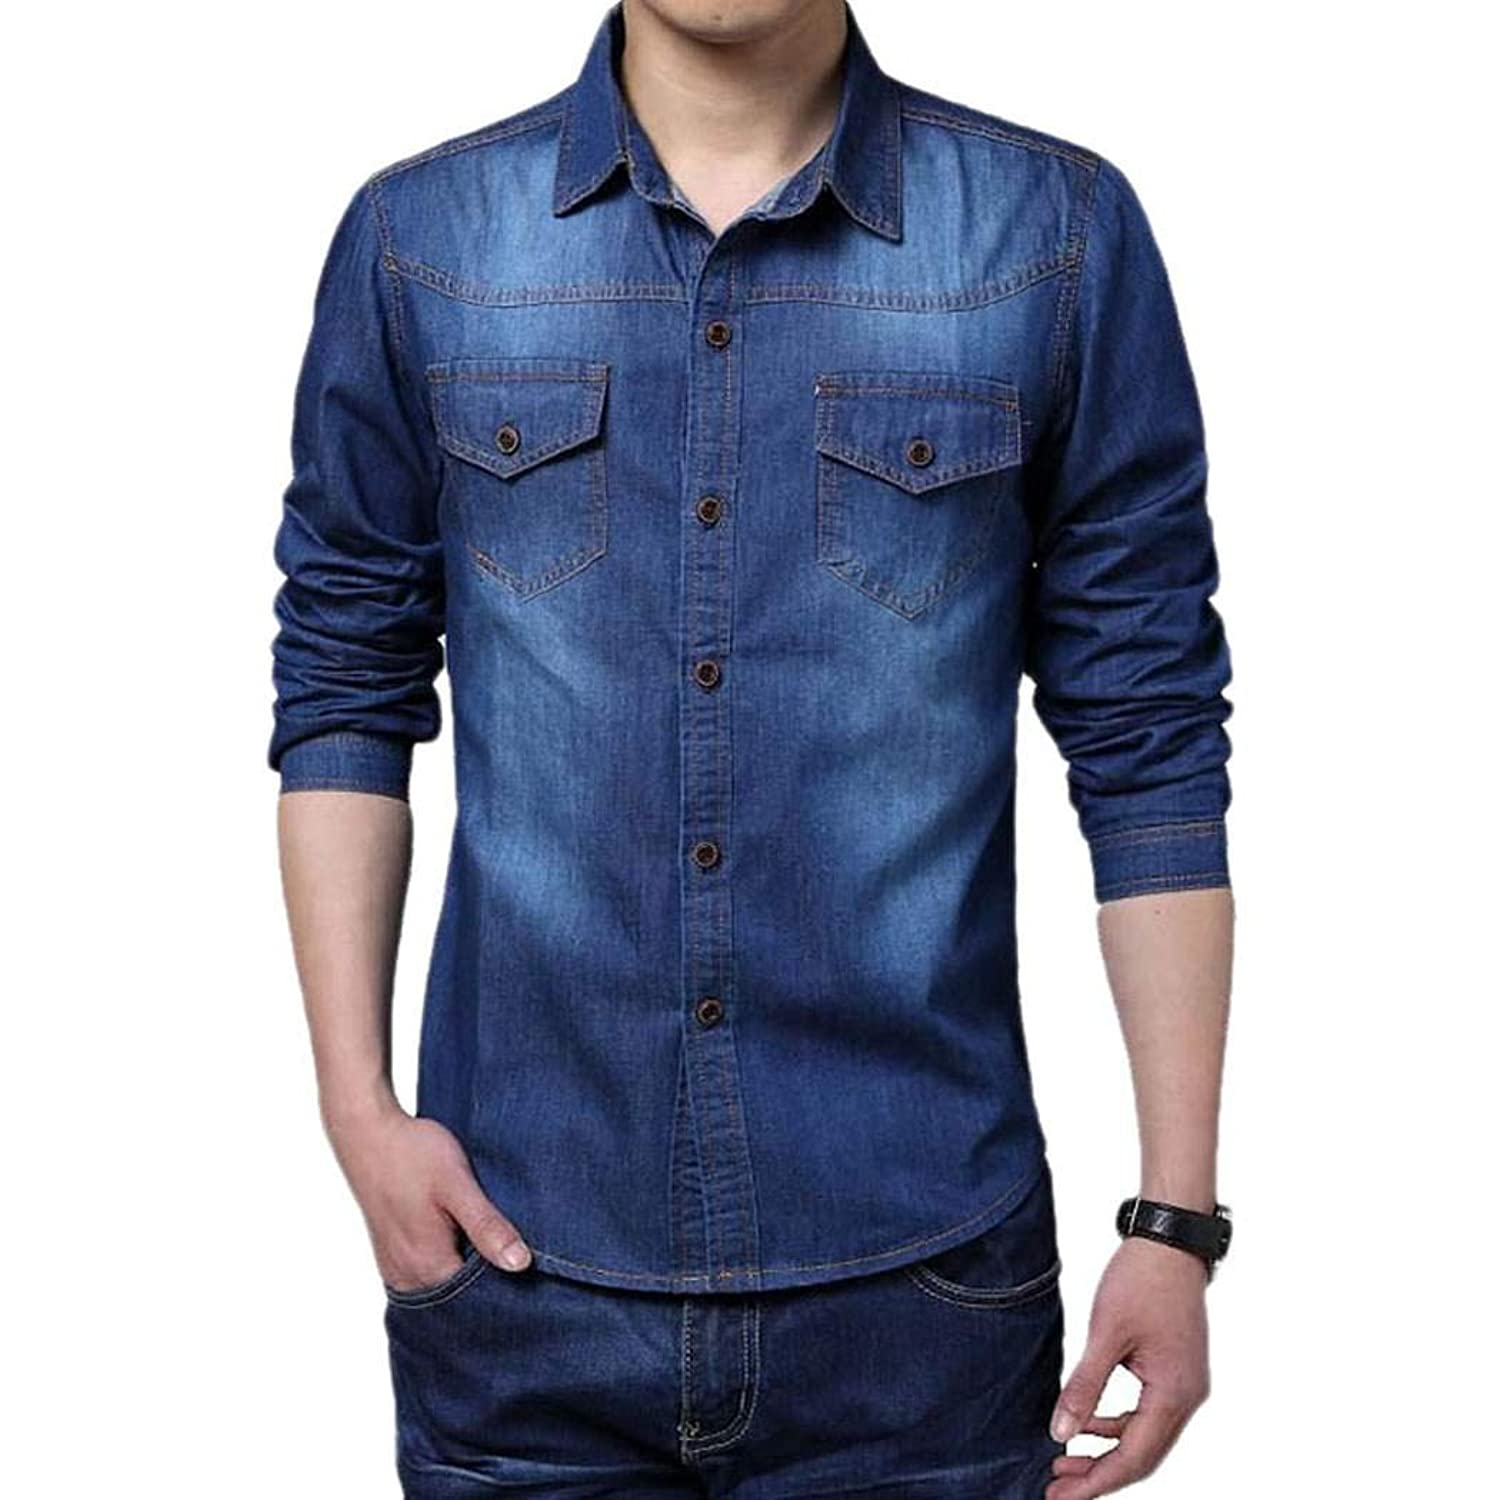 Eshion Men Cool Casual Long Sleeve Turn-down Collar Jean Shirt ...